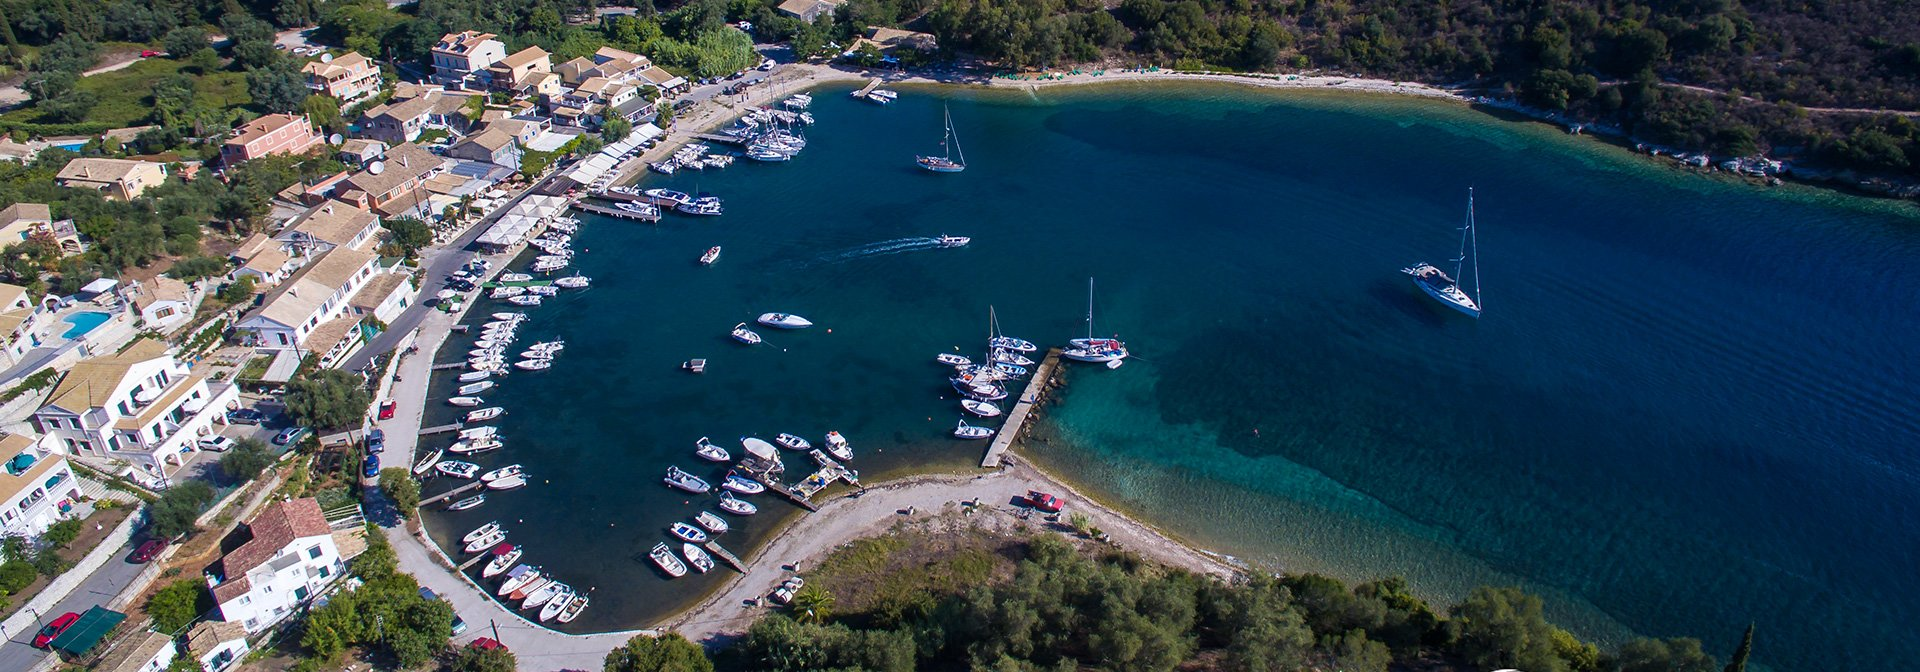 Aerial View of San Stefano North East harbour between Kassiopi and Nissaki